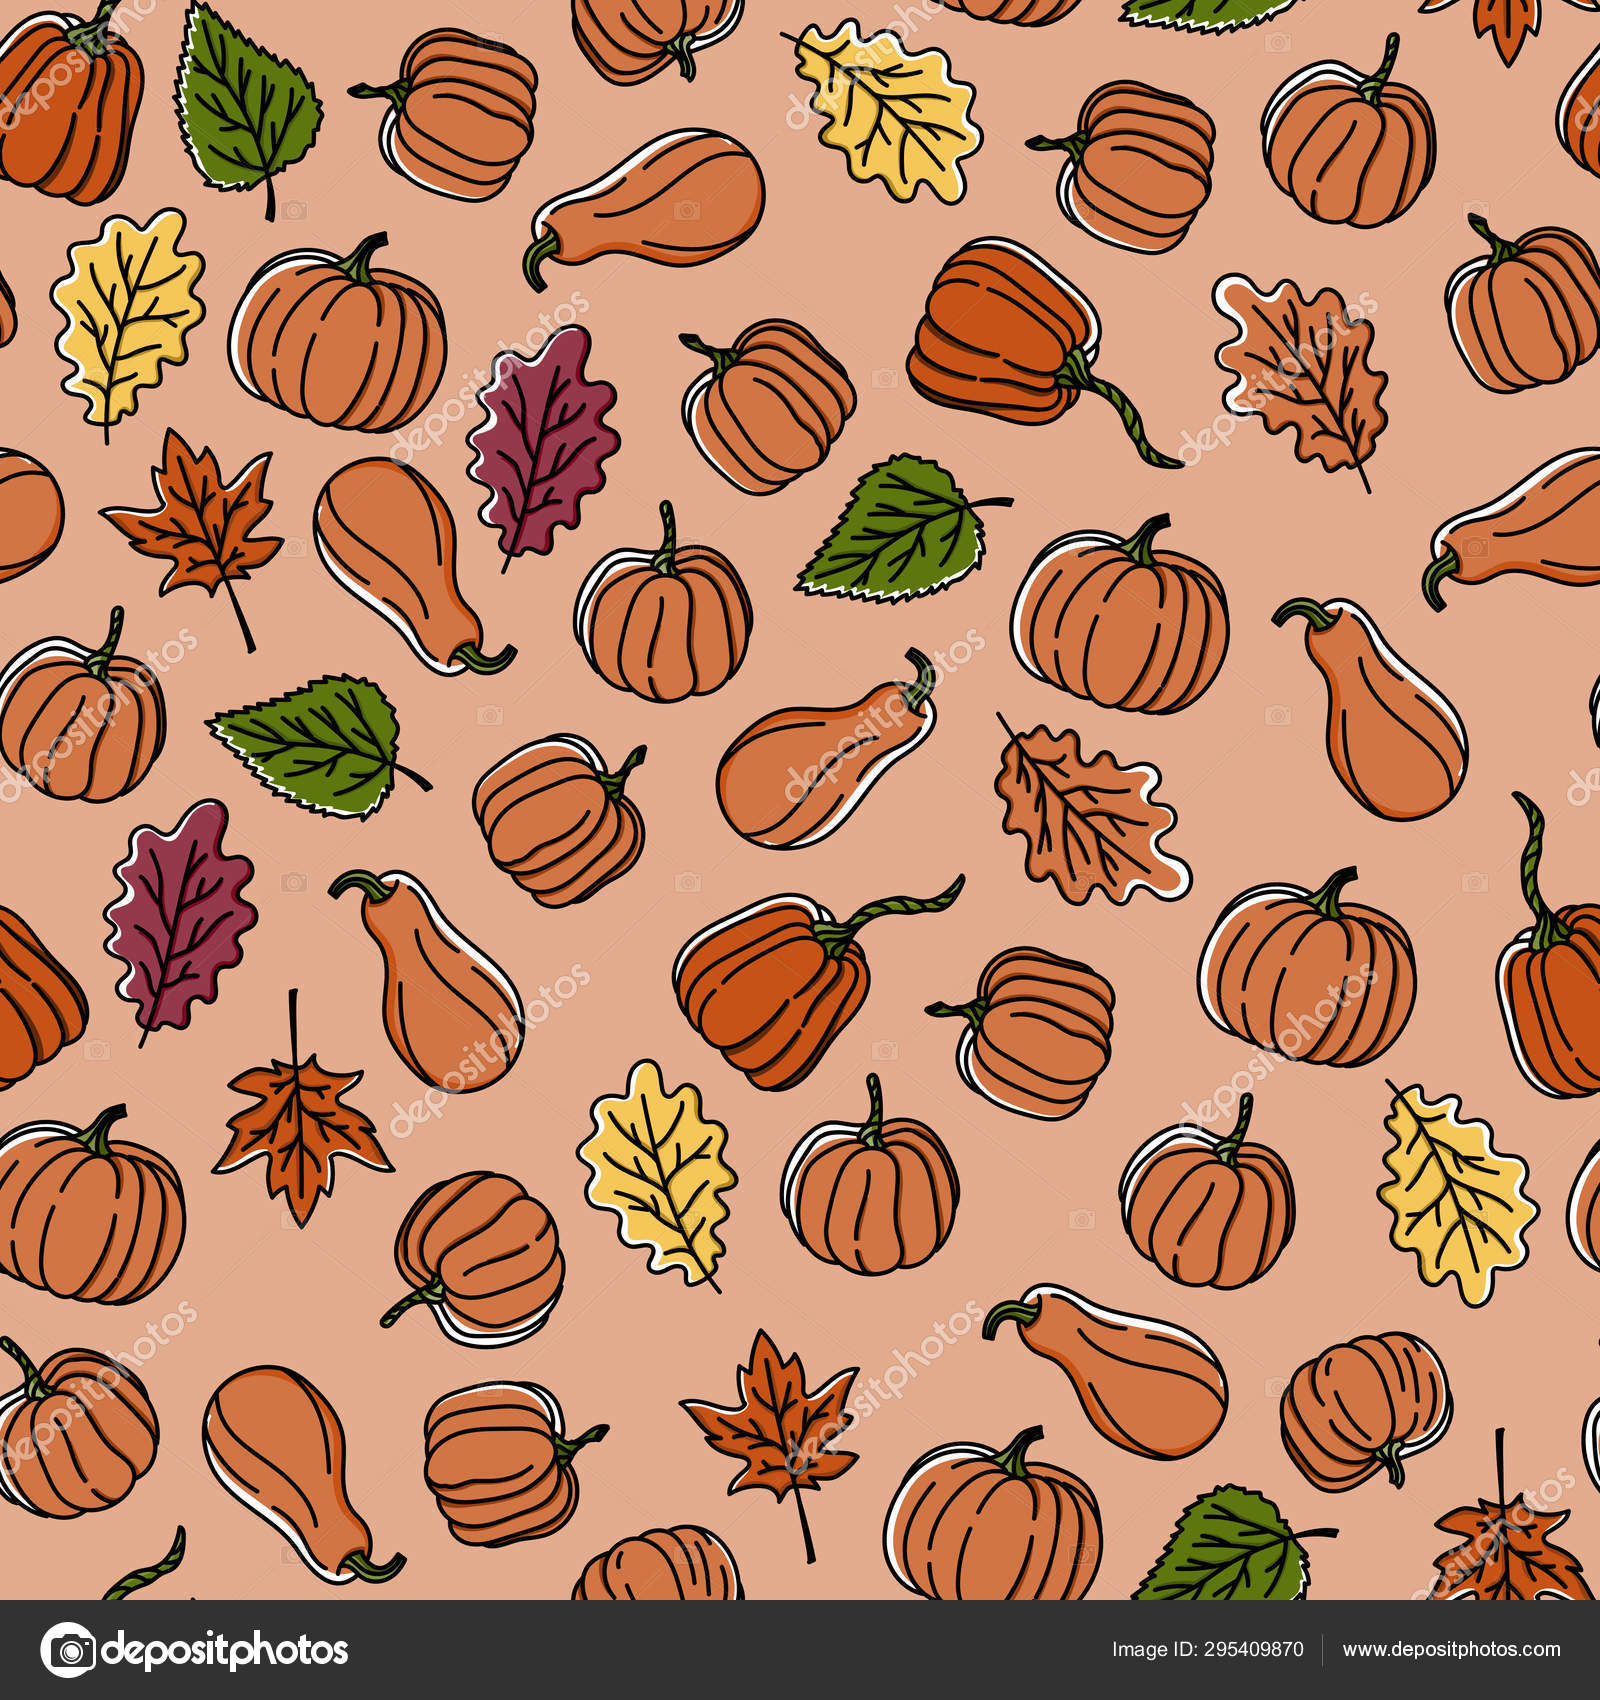 Thanksgiving Seamless Autumn Leaves And Pumpkin Pattern